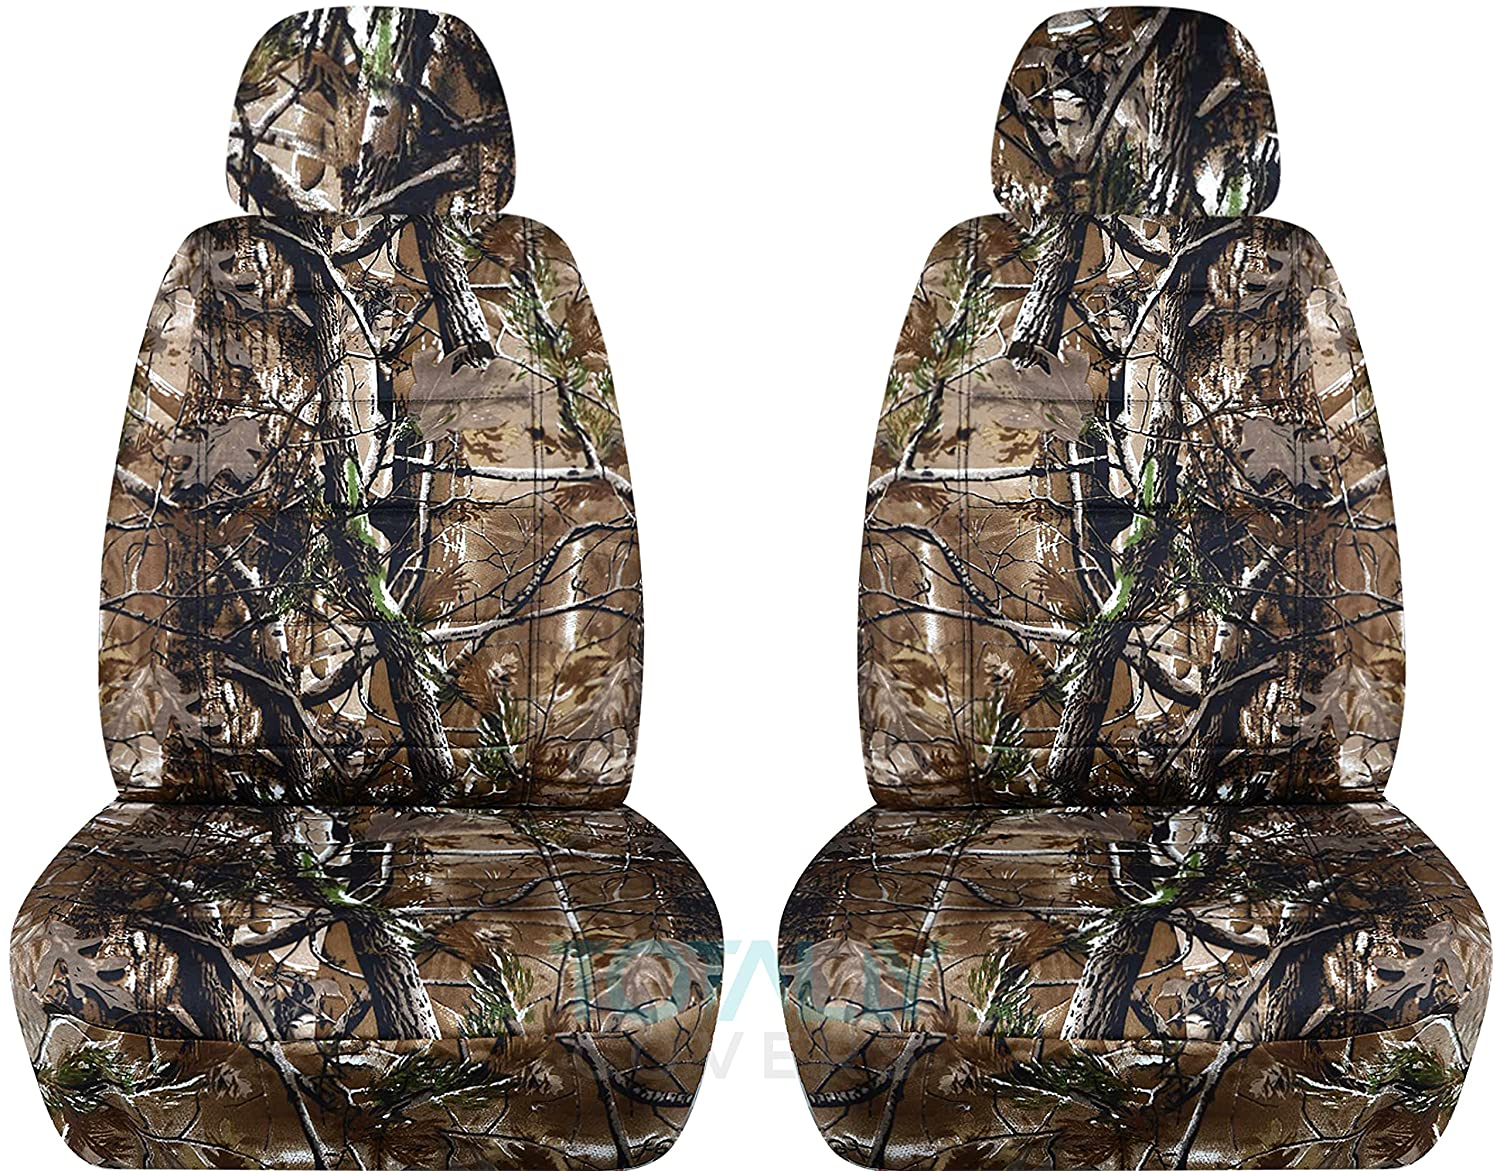 Front Will Make Fit Any Car//Truck//Van//SUV Semi-Custom Fit 22 Prints Camouflage Car Seat Covers w 2 Separate Headrest Covers: Gray Camo